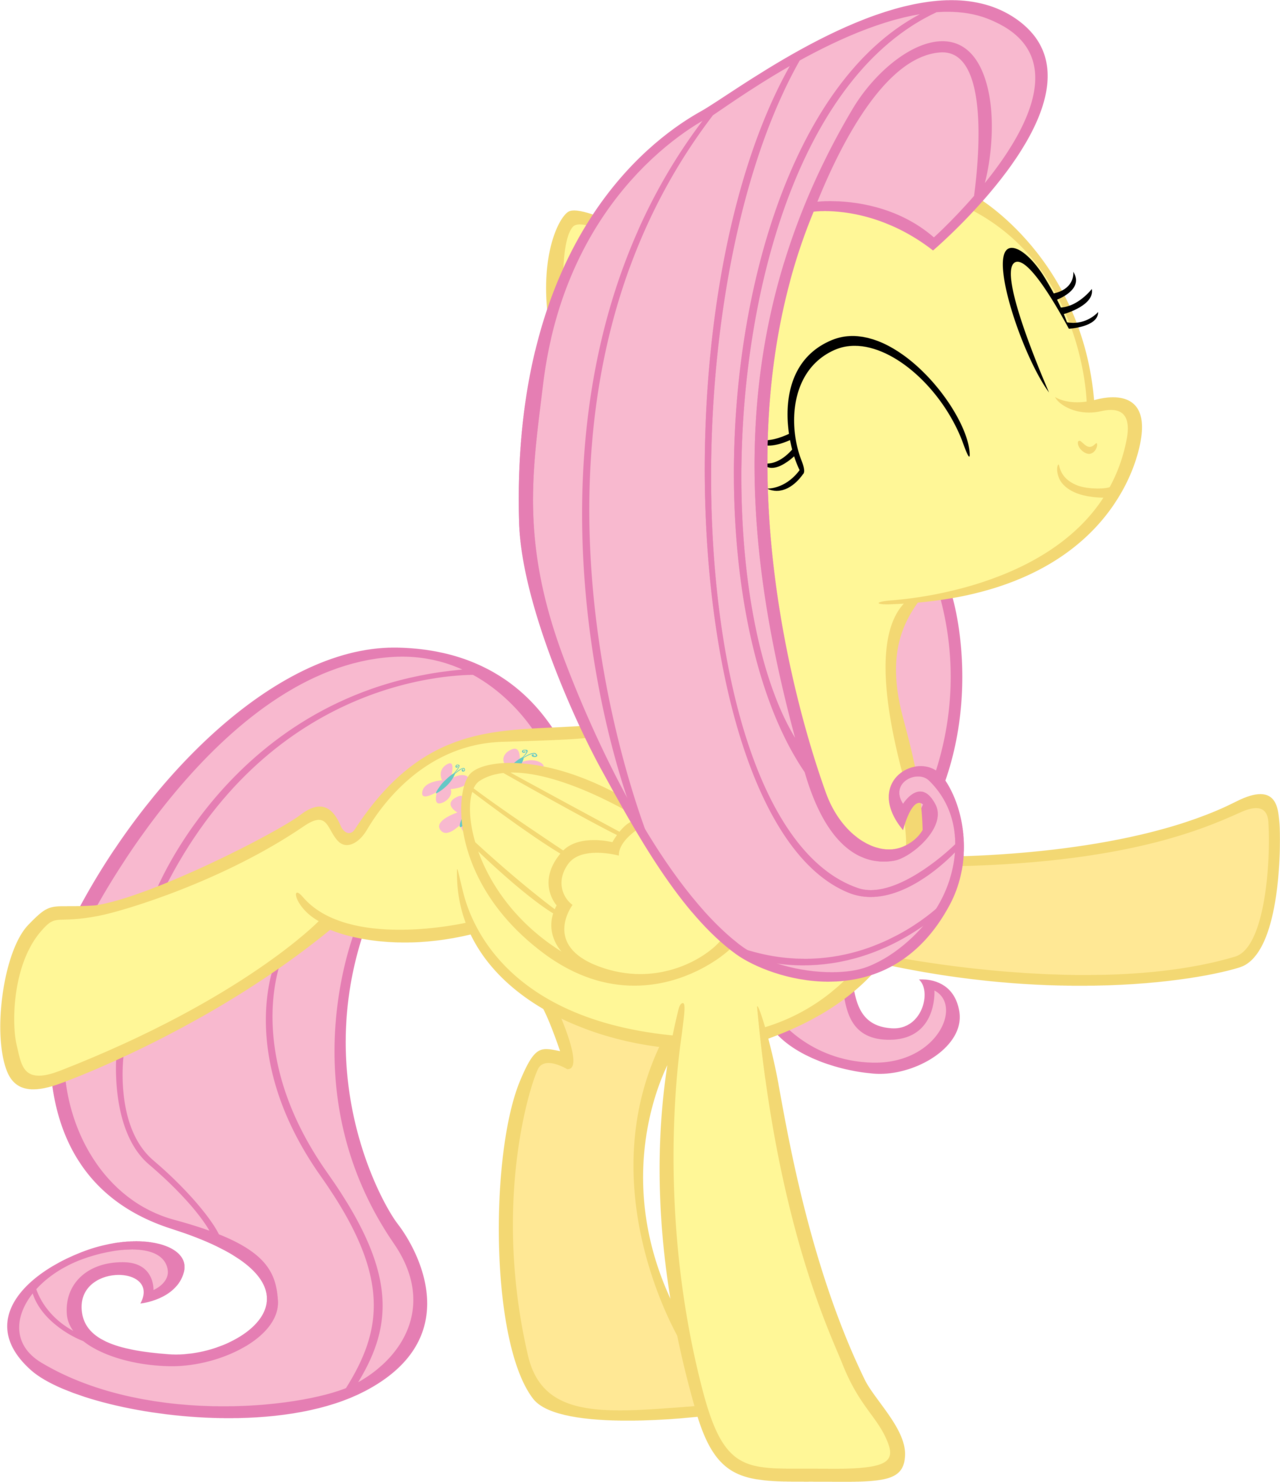 season of fluttershy s character development show discussion